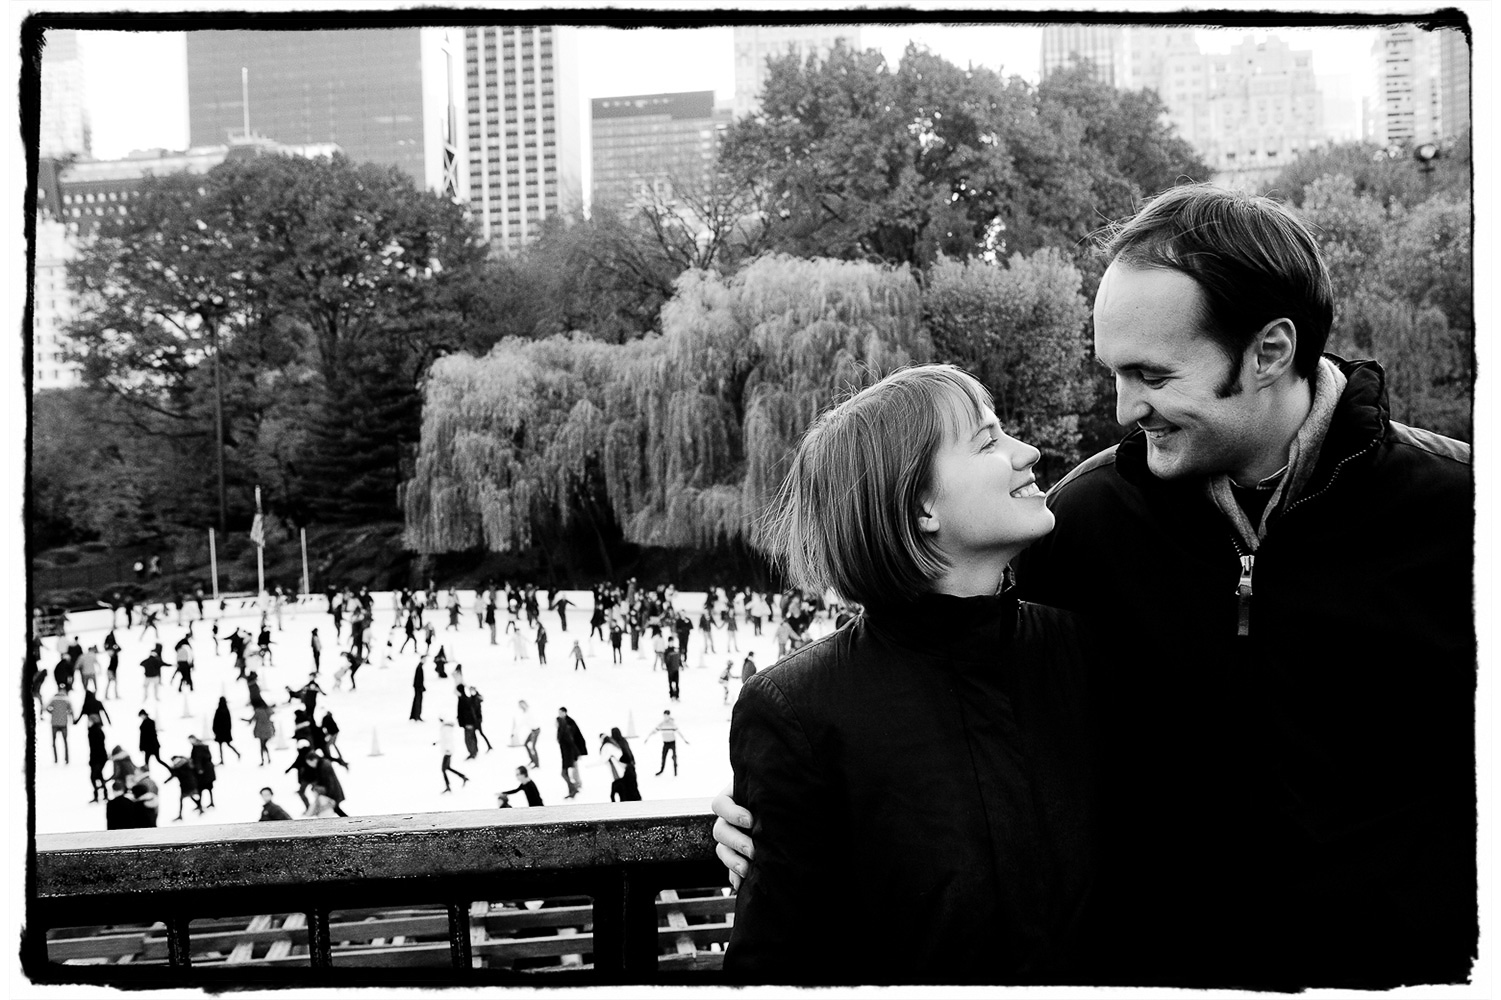 Engagement Portrait: Alicia & Matt enjoy the romantic winter scenes at the skating rink in Central Park.